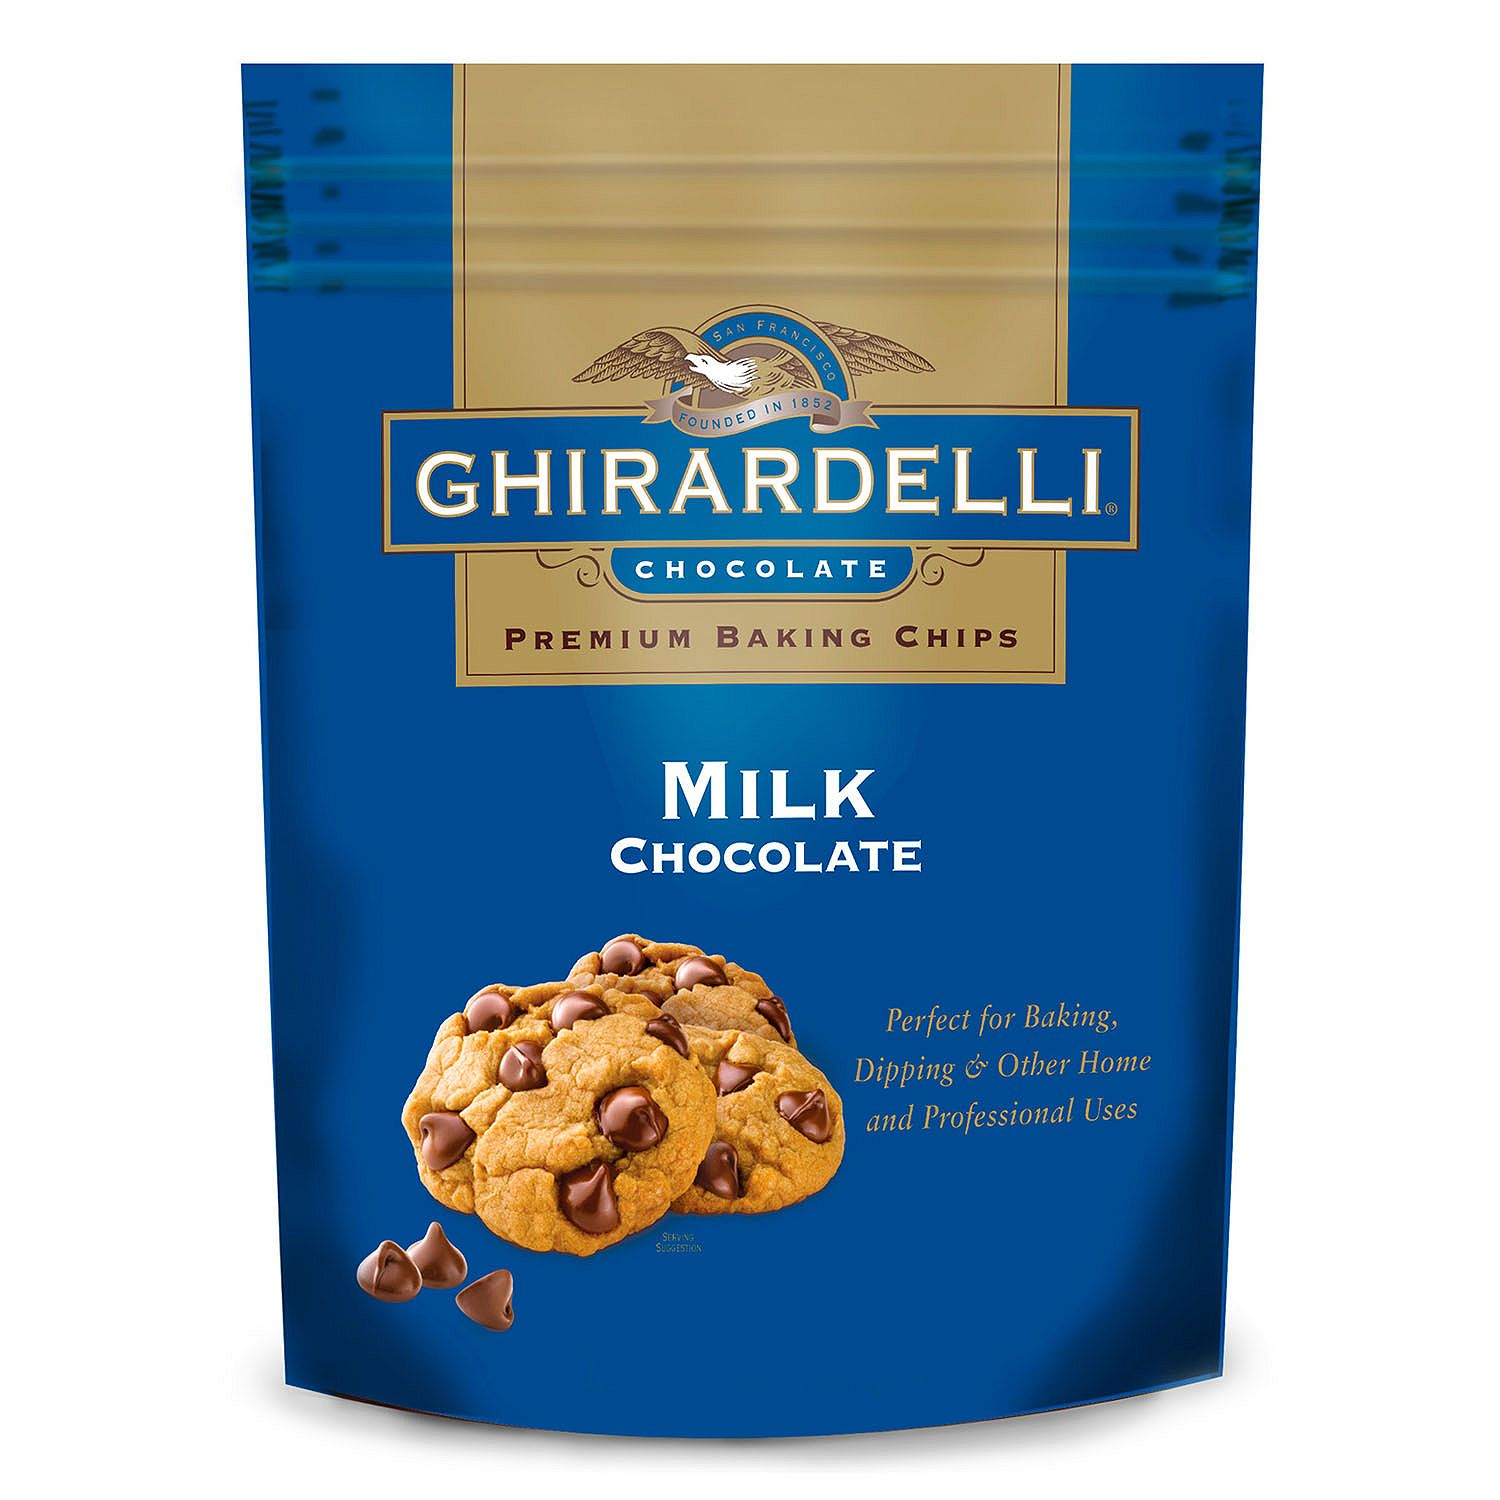 Ghirardelli Milk Chocolate Baking Chips (33 oz.) by Ghirardelli Chocolate Co.